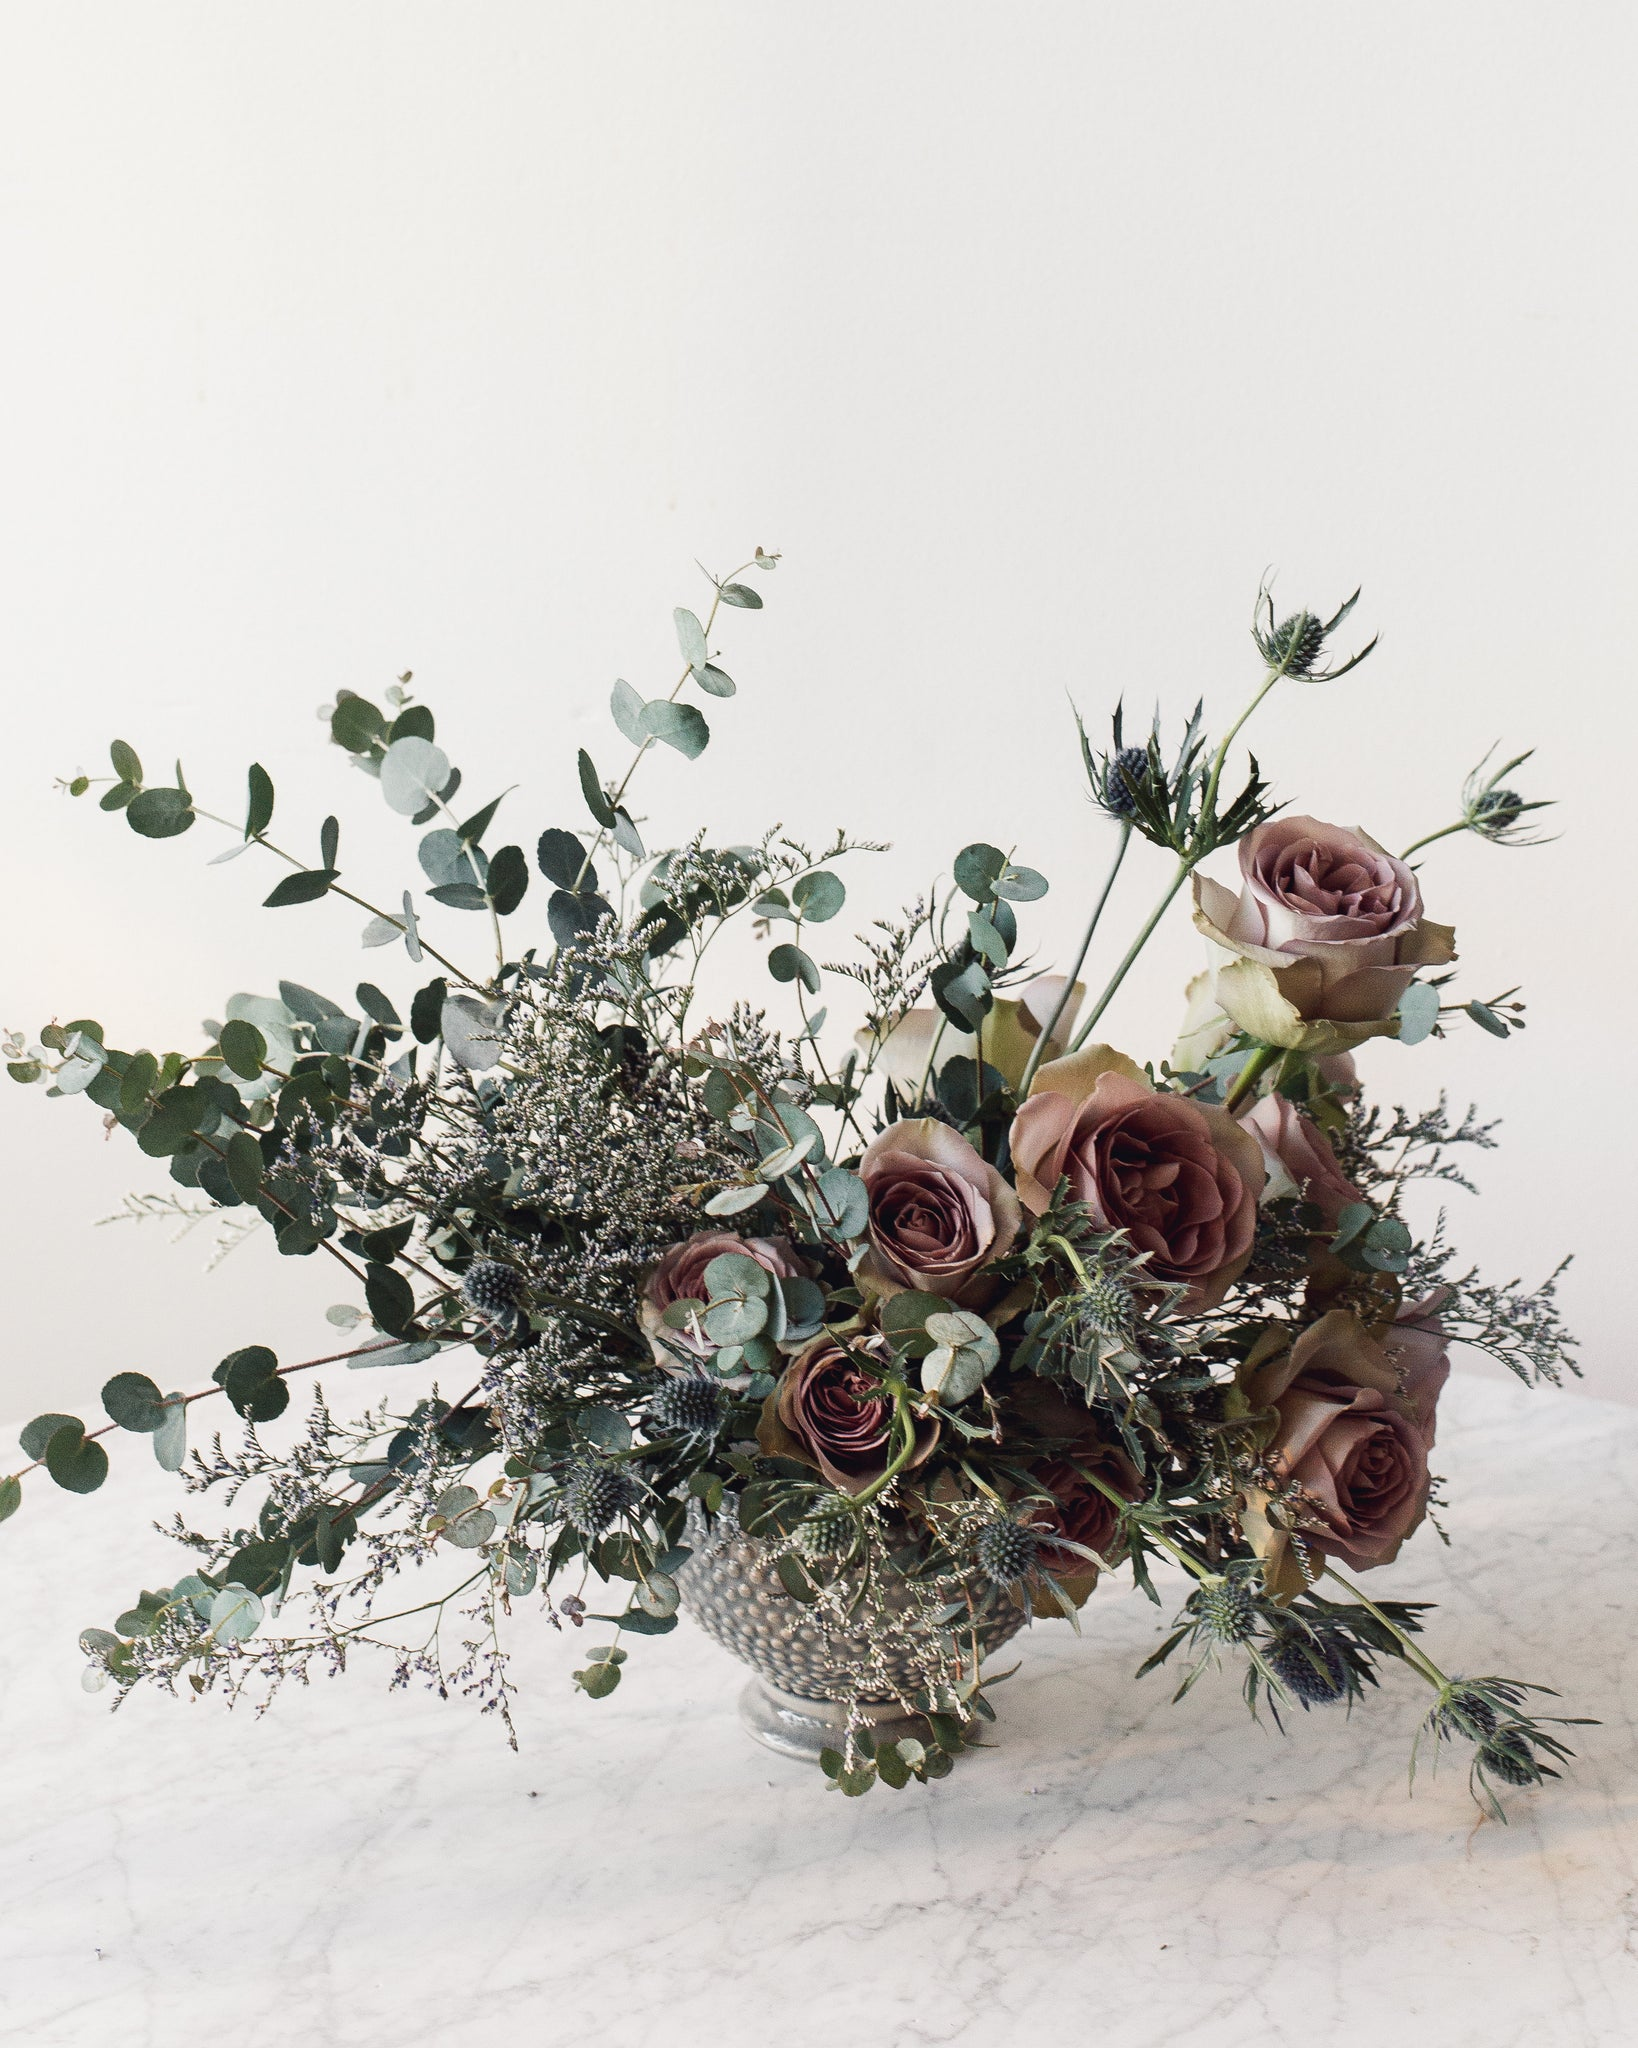 'Fog' Floral Arrangement